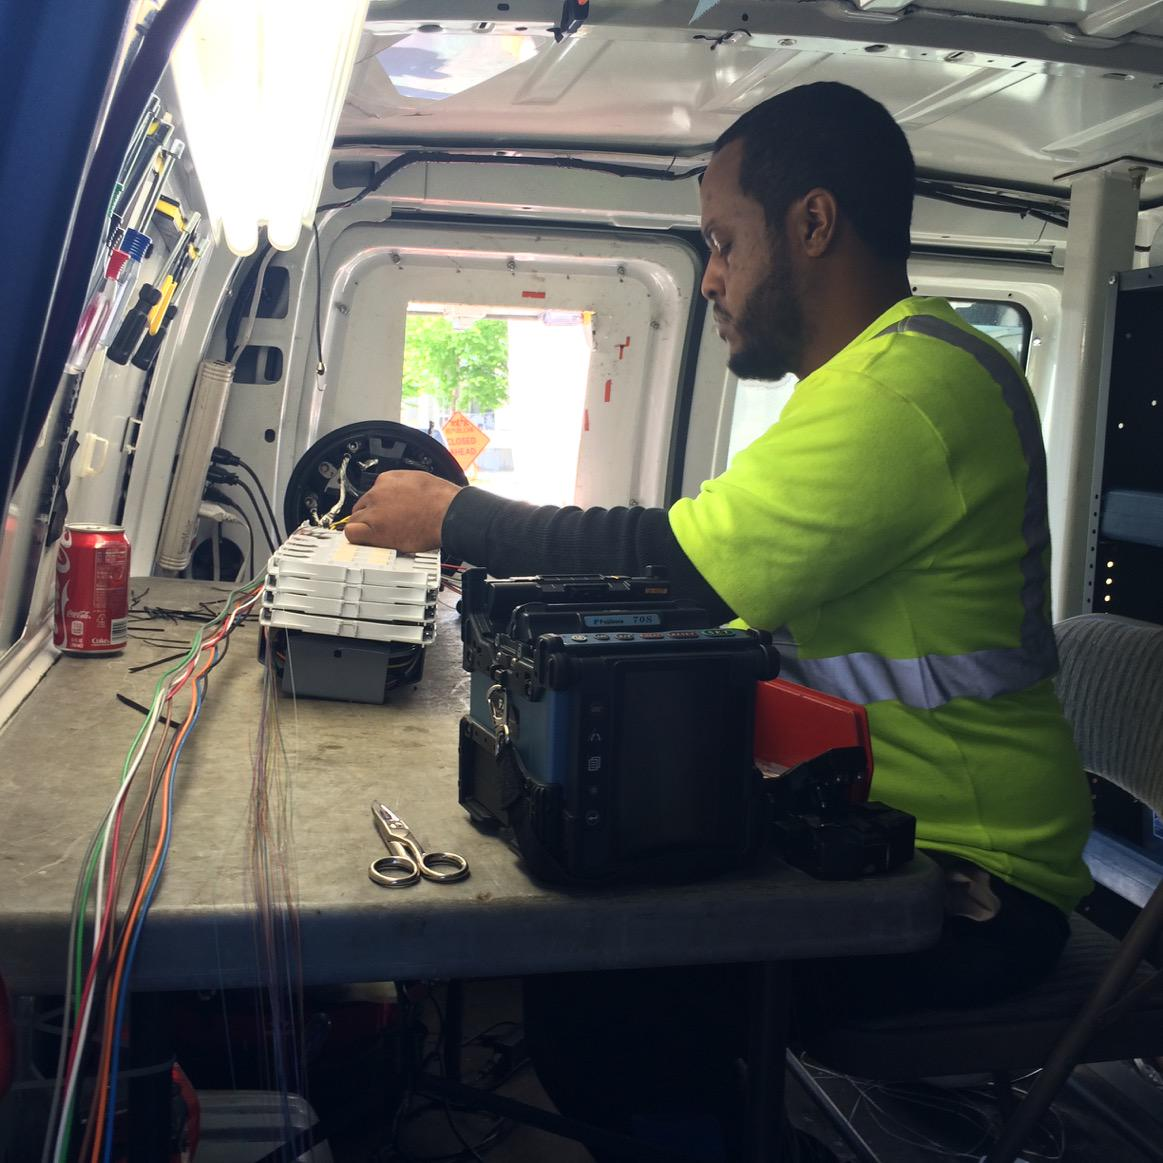 Splicing fiber in SLU to restore service to Madison Park and surrounding neighborhoods. http://t.co/sk1GWr6cC6